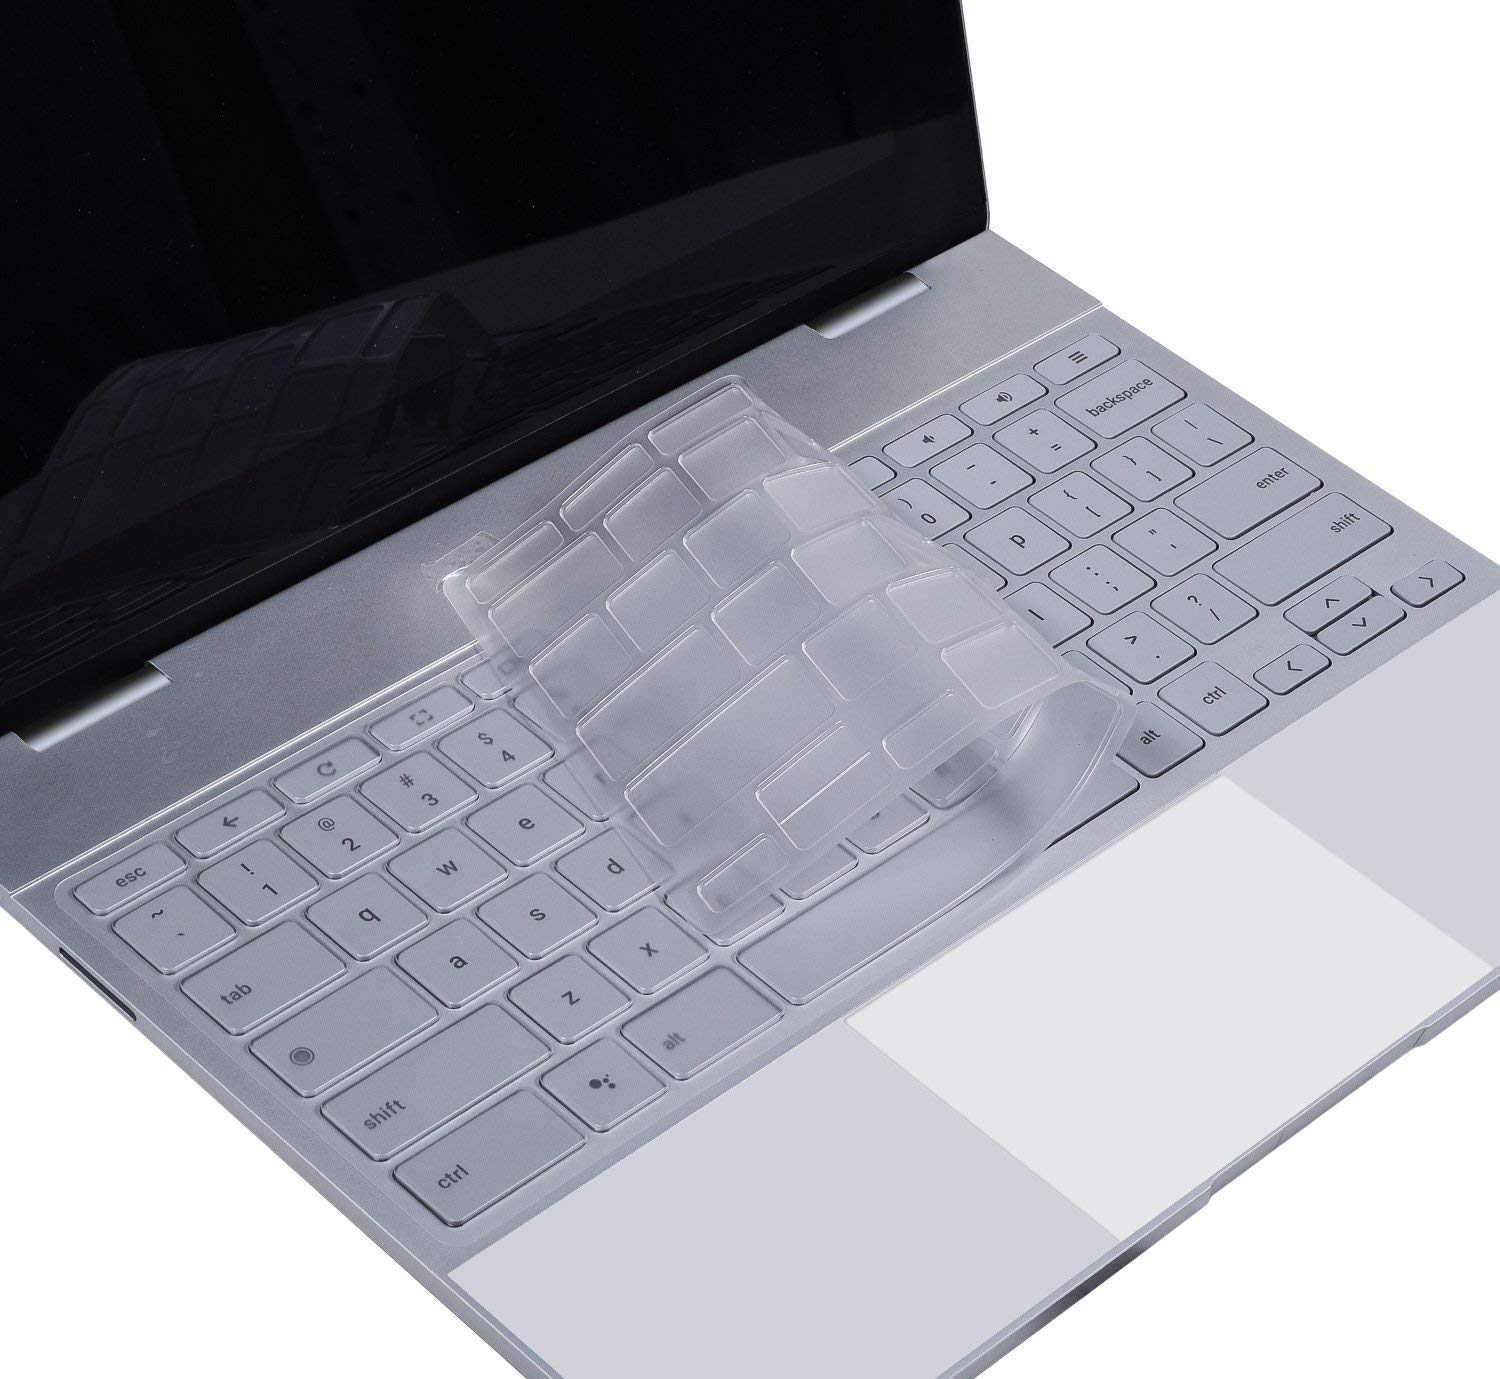 "CASEBUY Ultra Thin Soft Clear Keyboard Cover for Google Pixelbook 12.3"" Touch-Screen Chromebook(2019/2018/2017 Released) Soft-Touch TPU Keyboard Skin, US Layout"